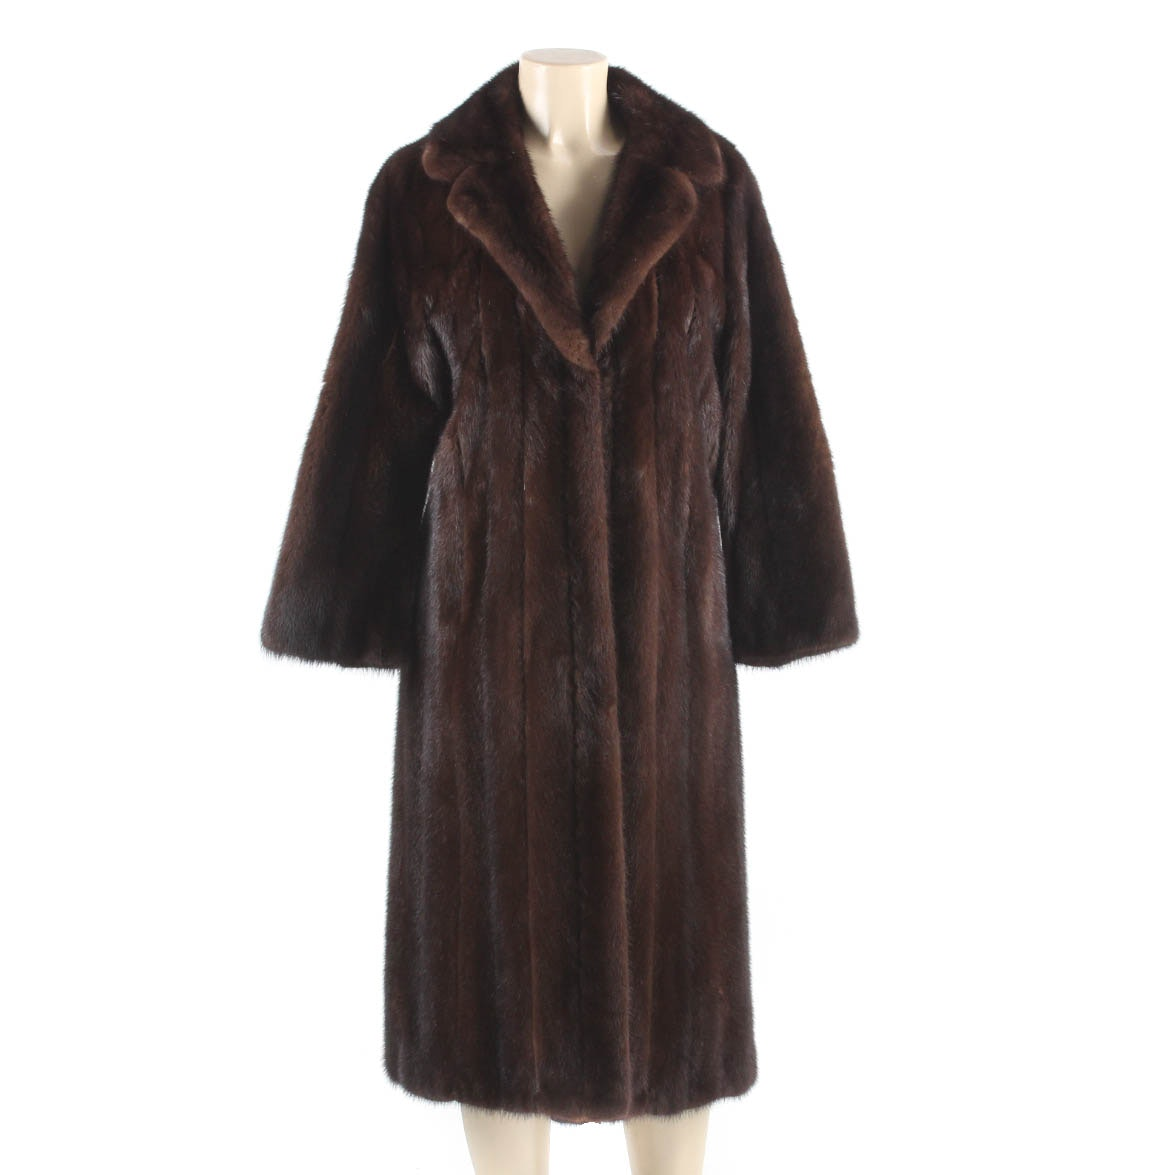 Vintage Full-Length Mahogany Mink Fur Coat